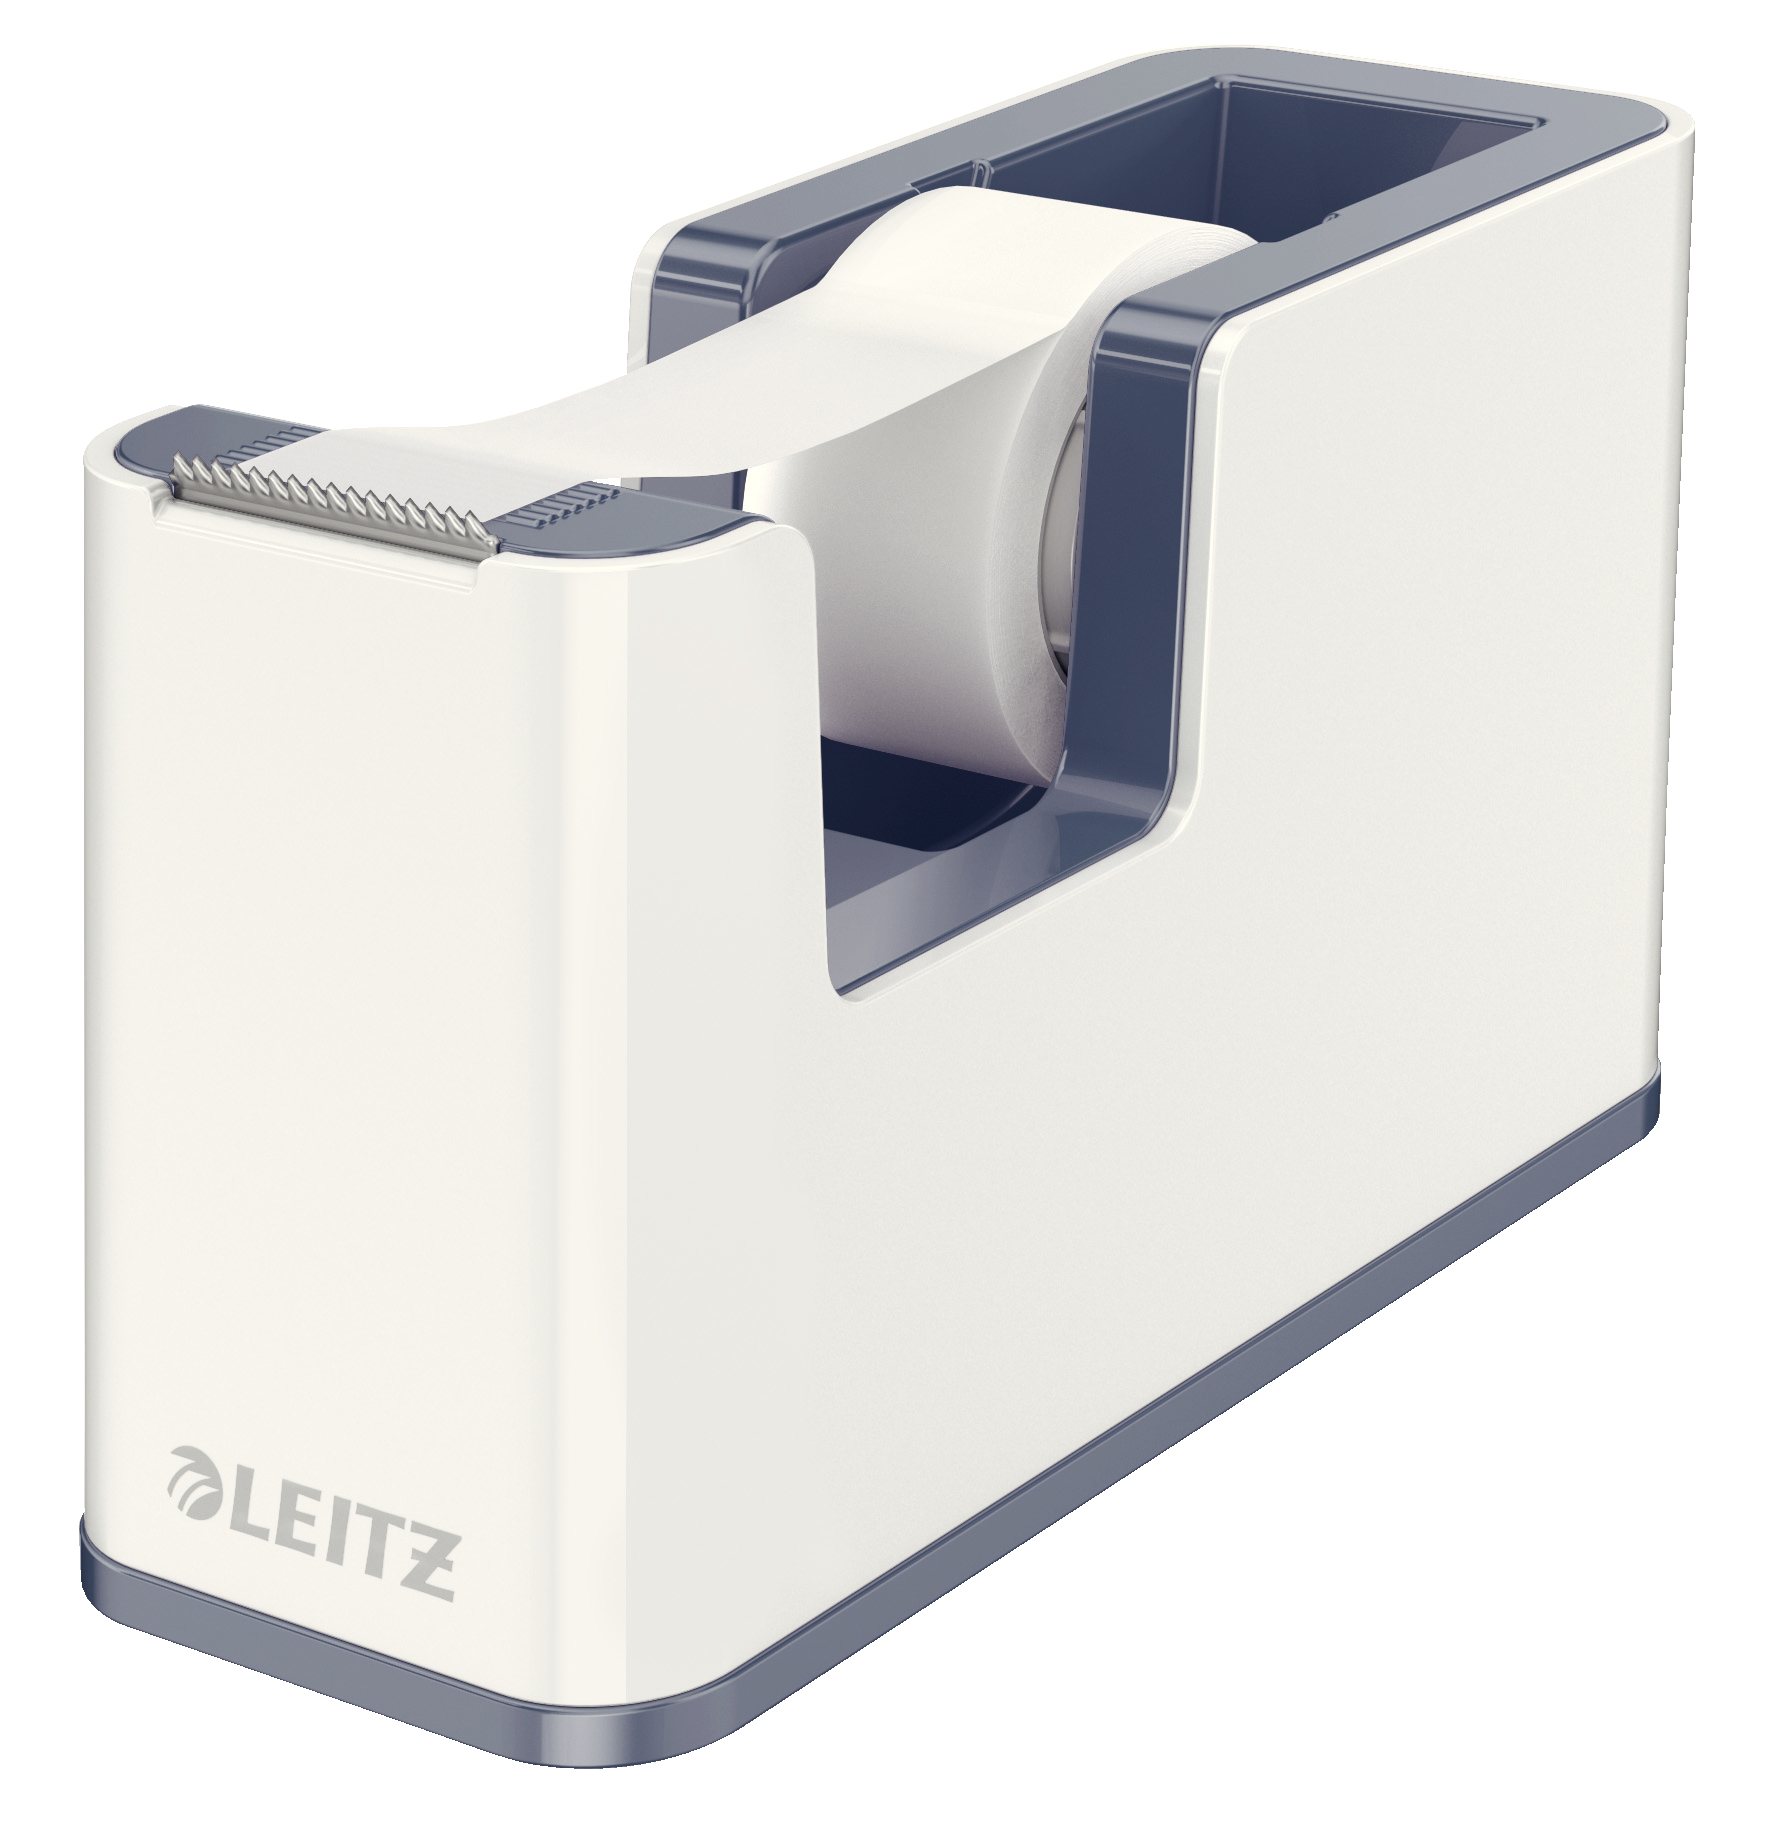 Leitz WOW Dual Colour Tape Dispenser for 19mm Tapes White/Grey 53641001